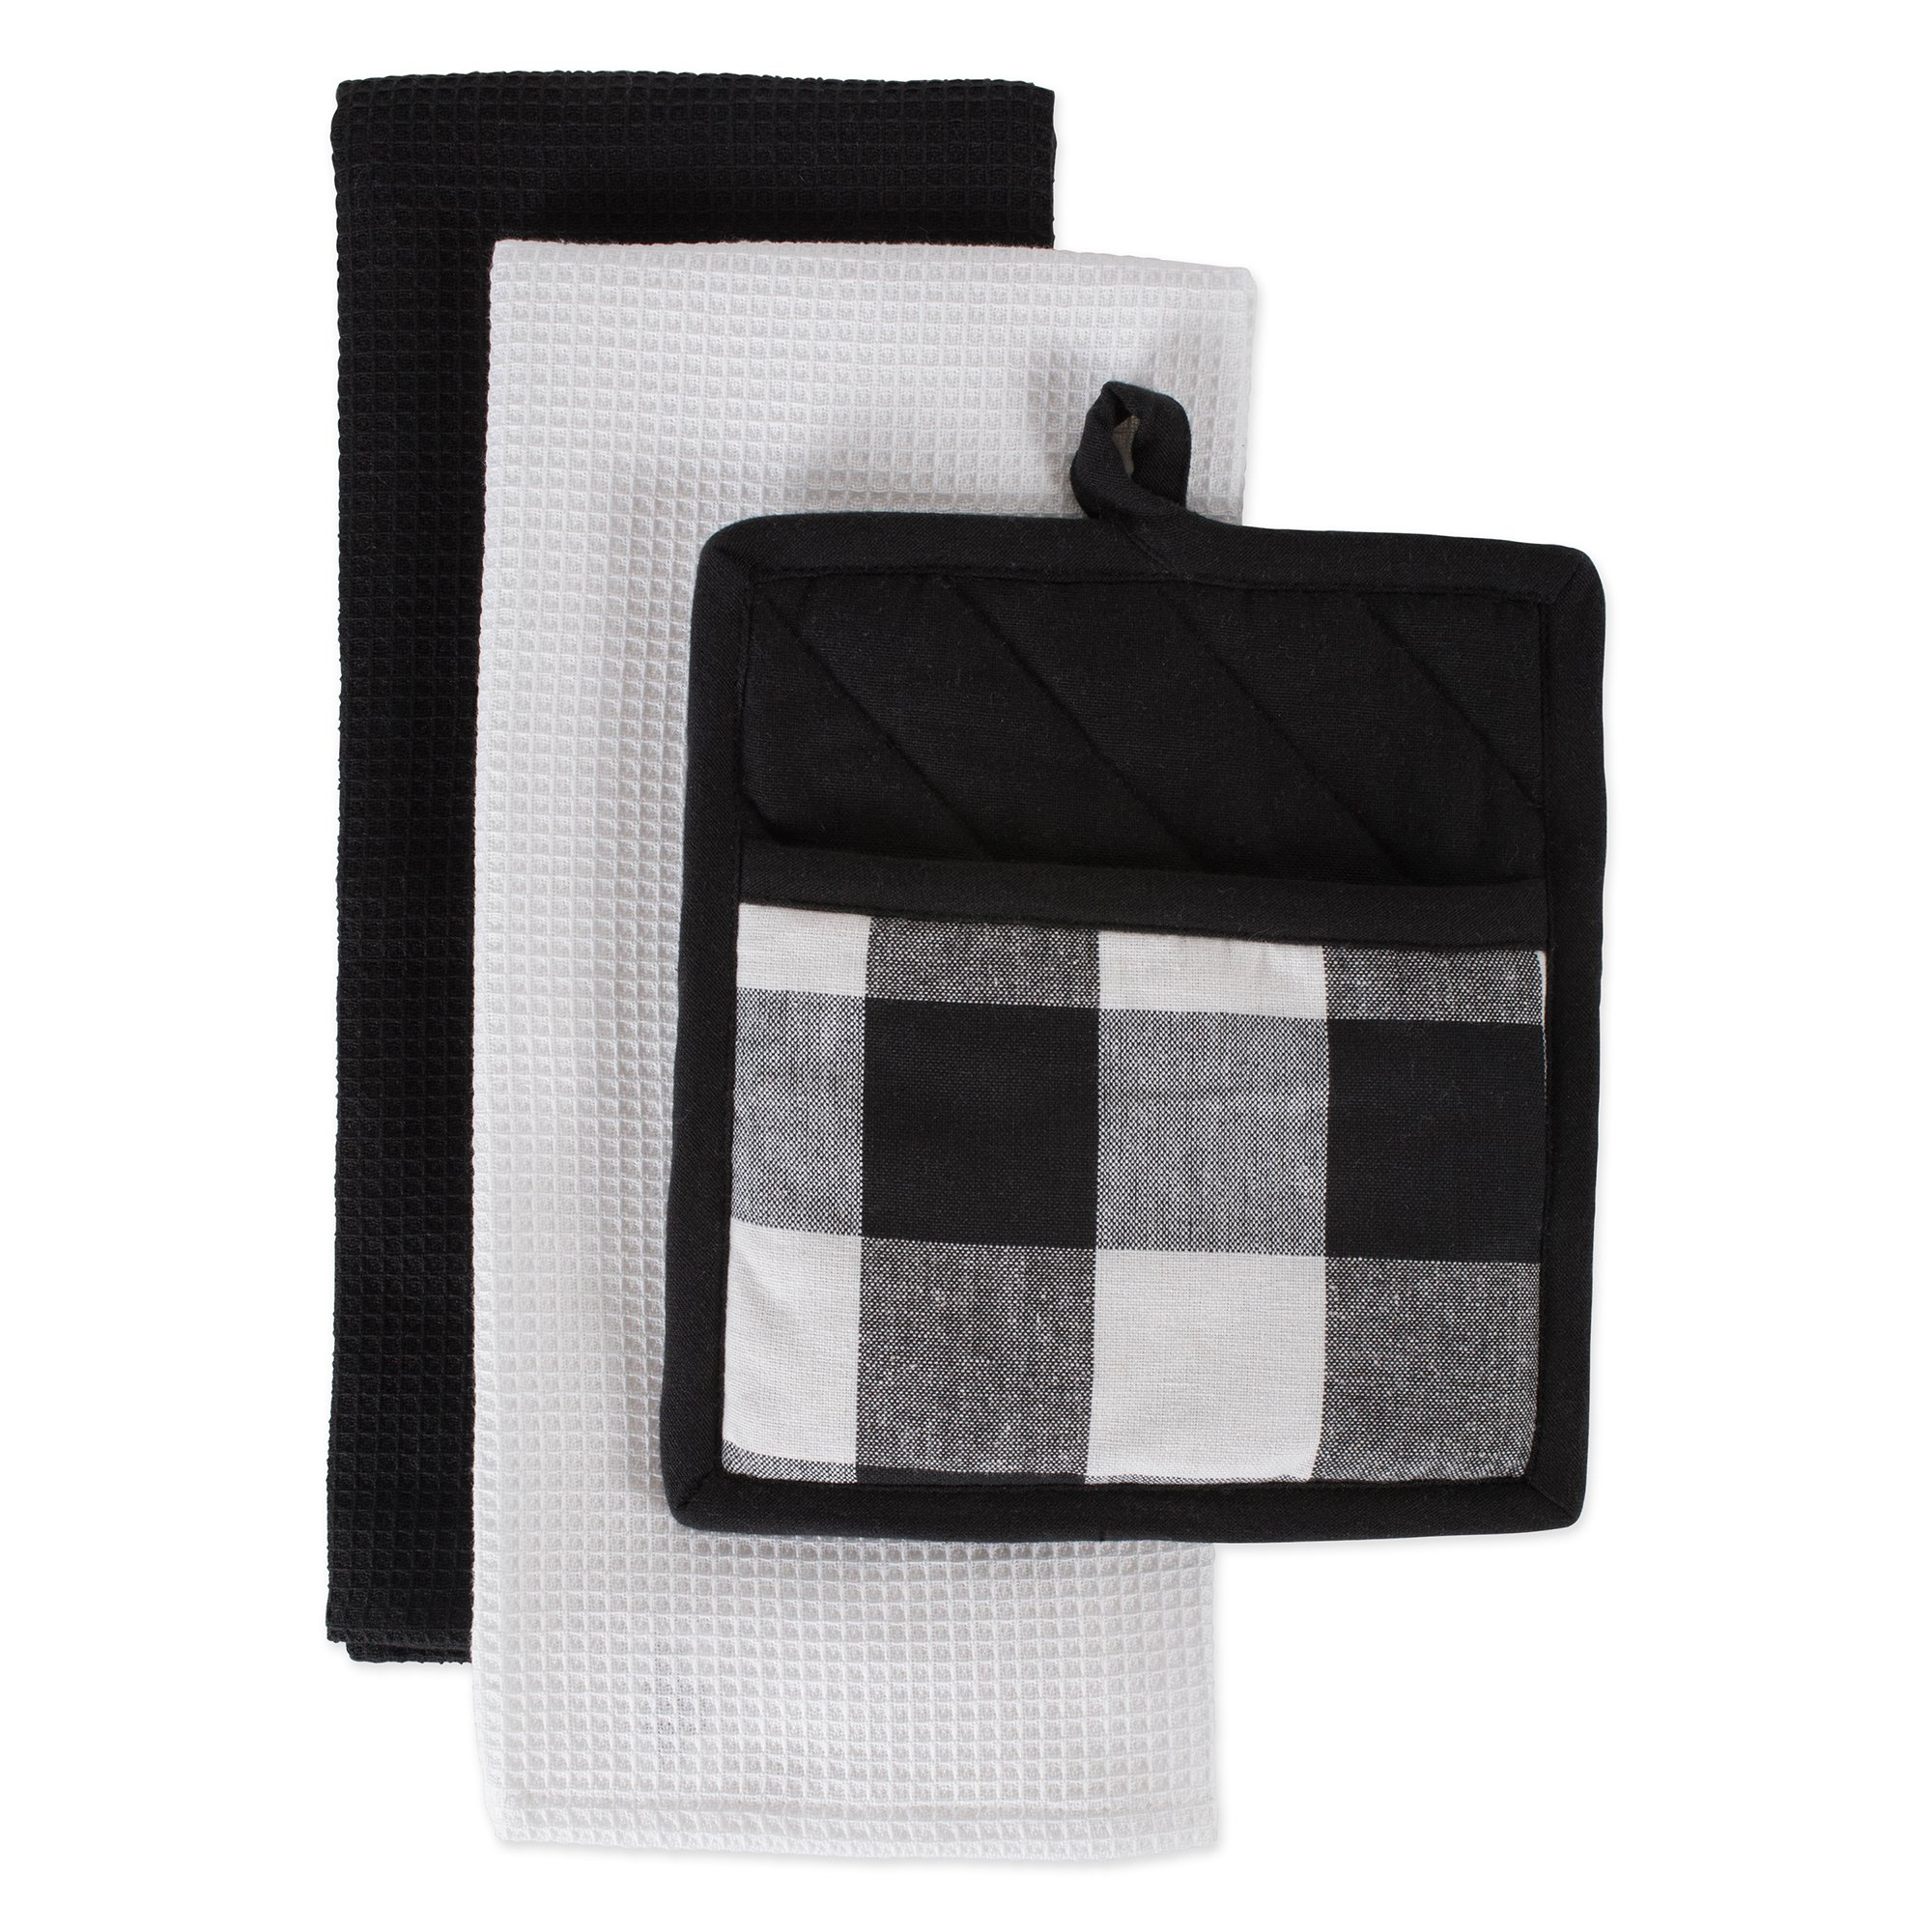 DII CAMZ10891 Cotton Buffalo Check Plaid Gift Set, Machine Washable, Perfect for Everyday Kitchen Cooking and Baking, Dishtowel 18X28 and Potholder 8X9, Black 3 Pieces